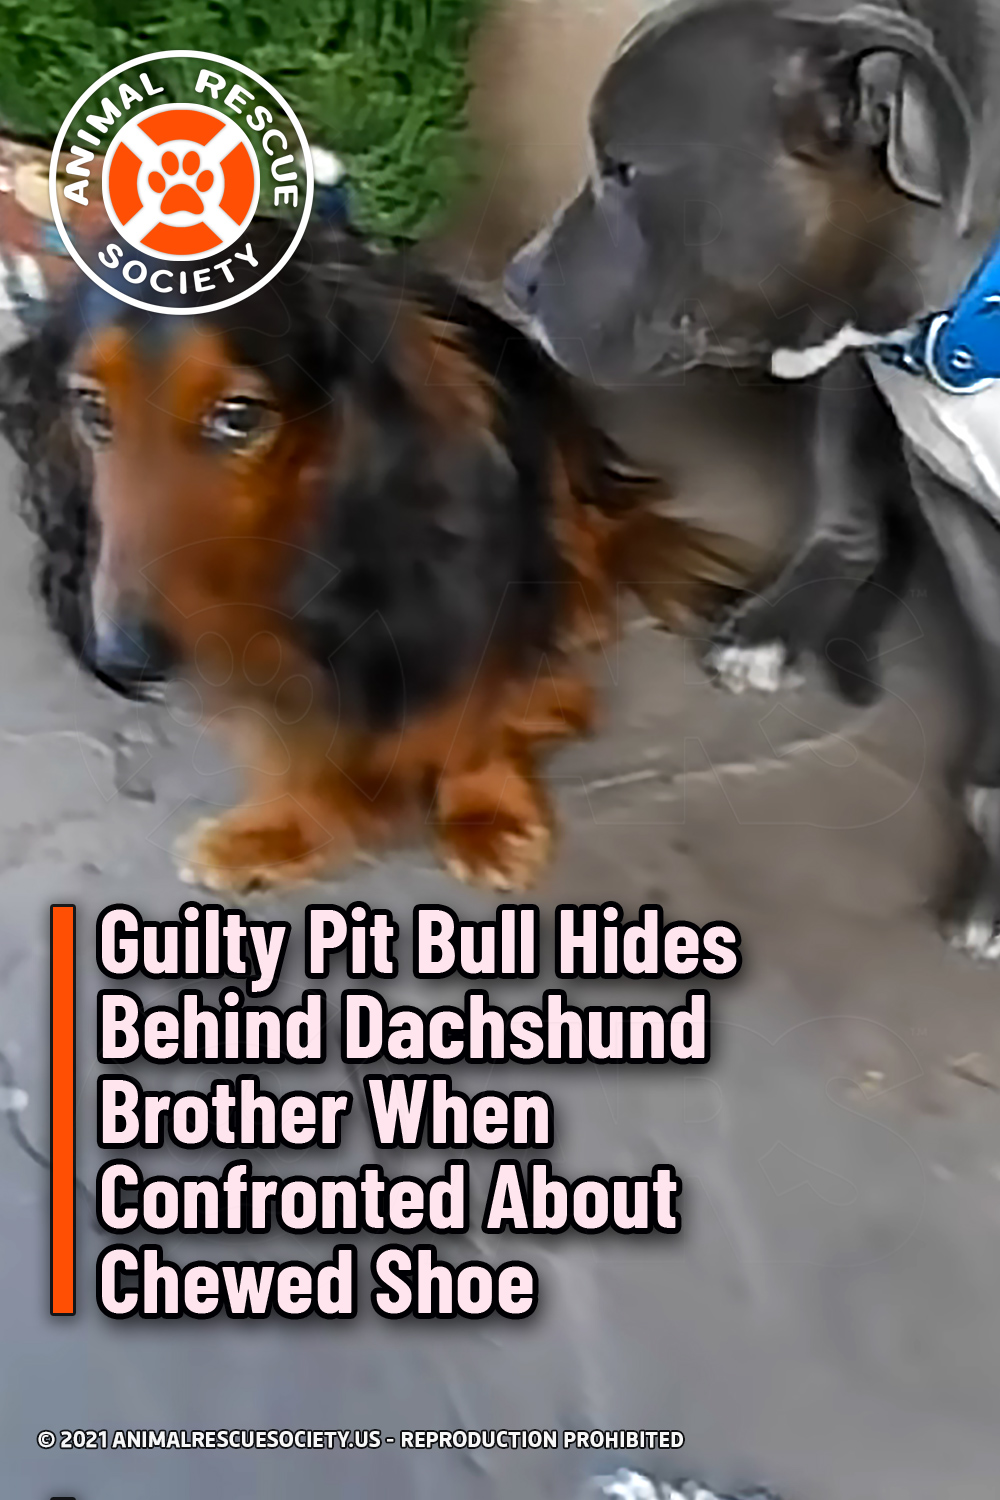 Guilty Pit Bull Hides Behind Dachshund Brother When Confronted About Chewed Shoe